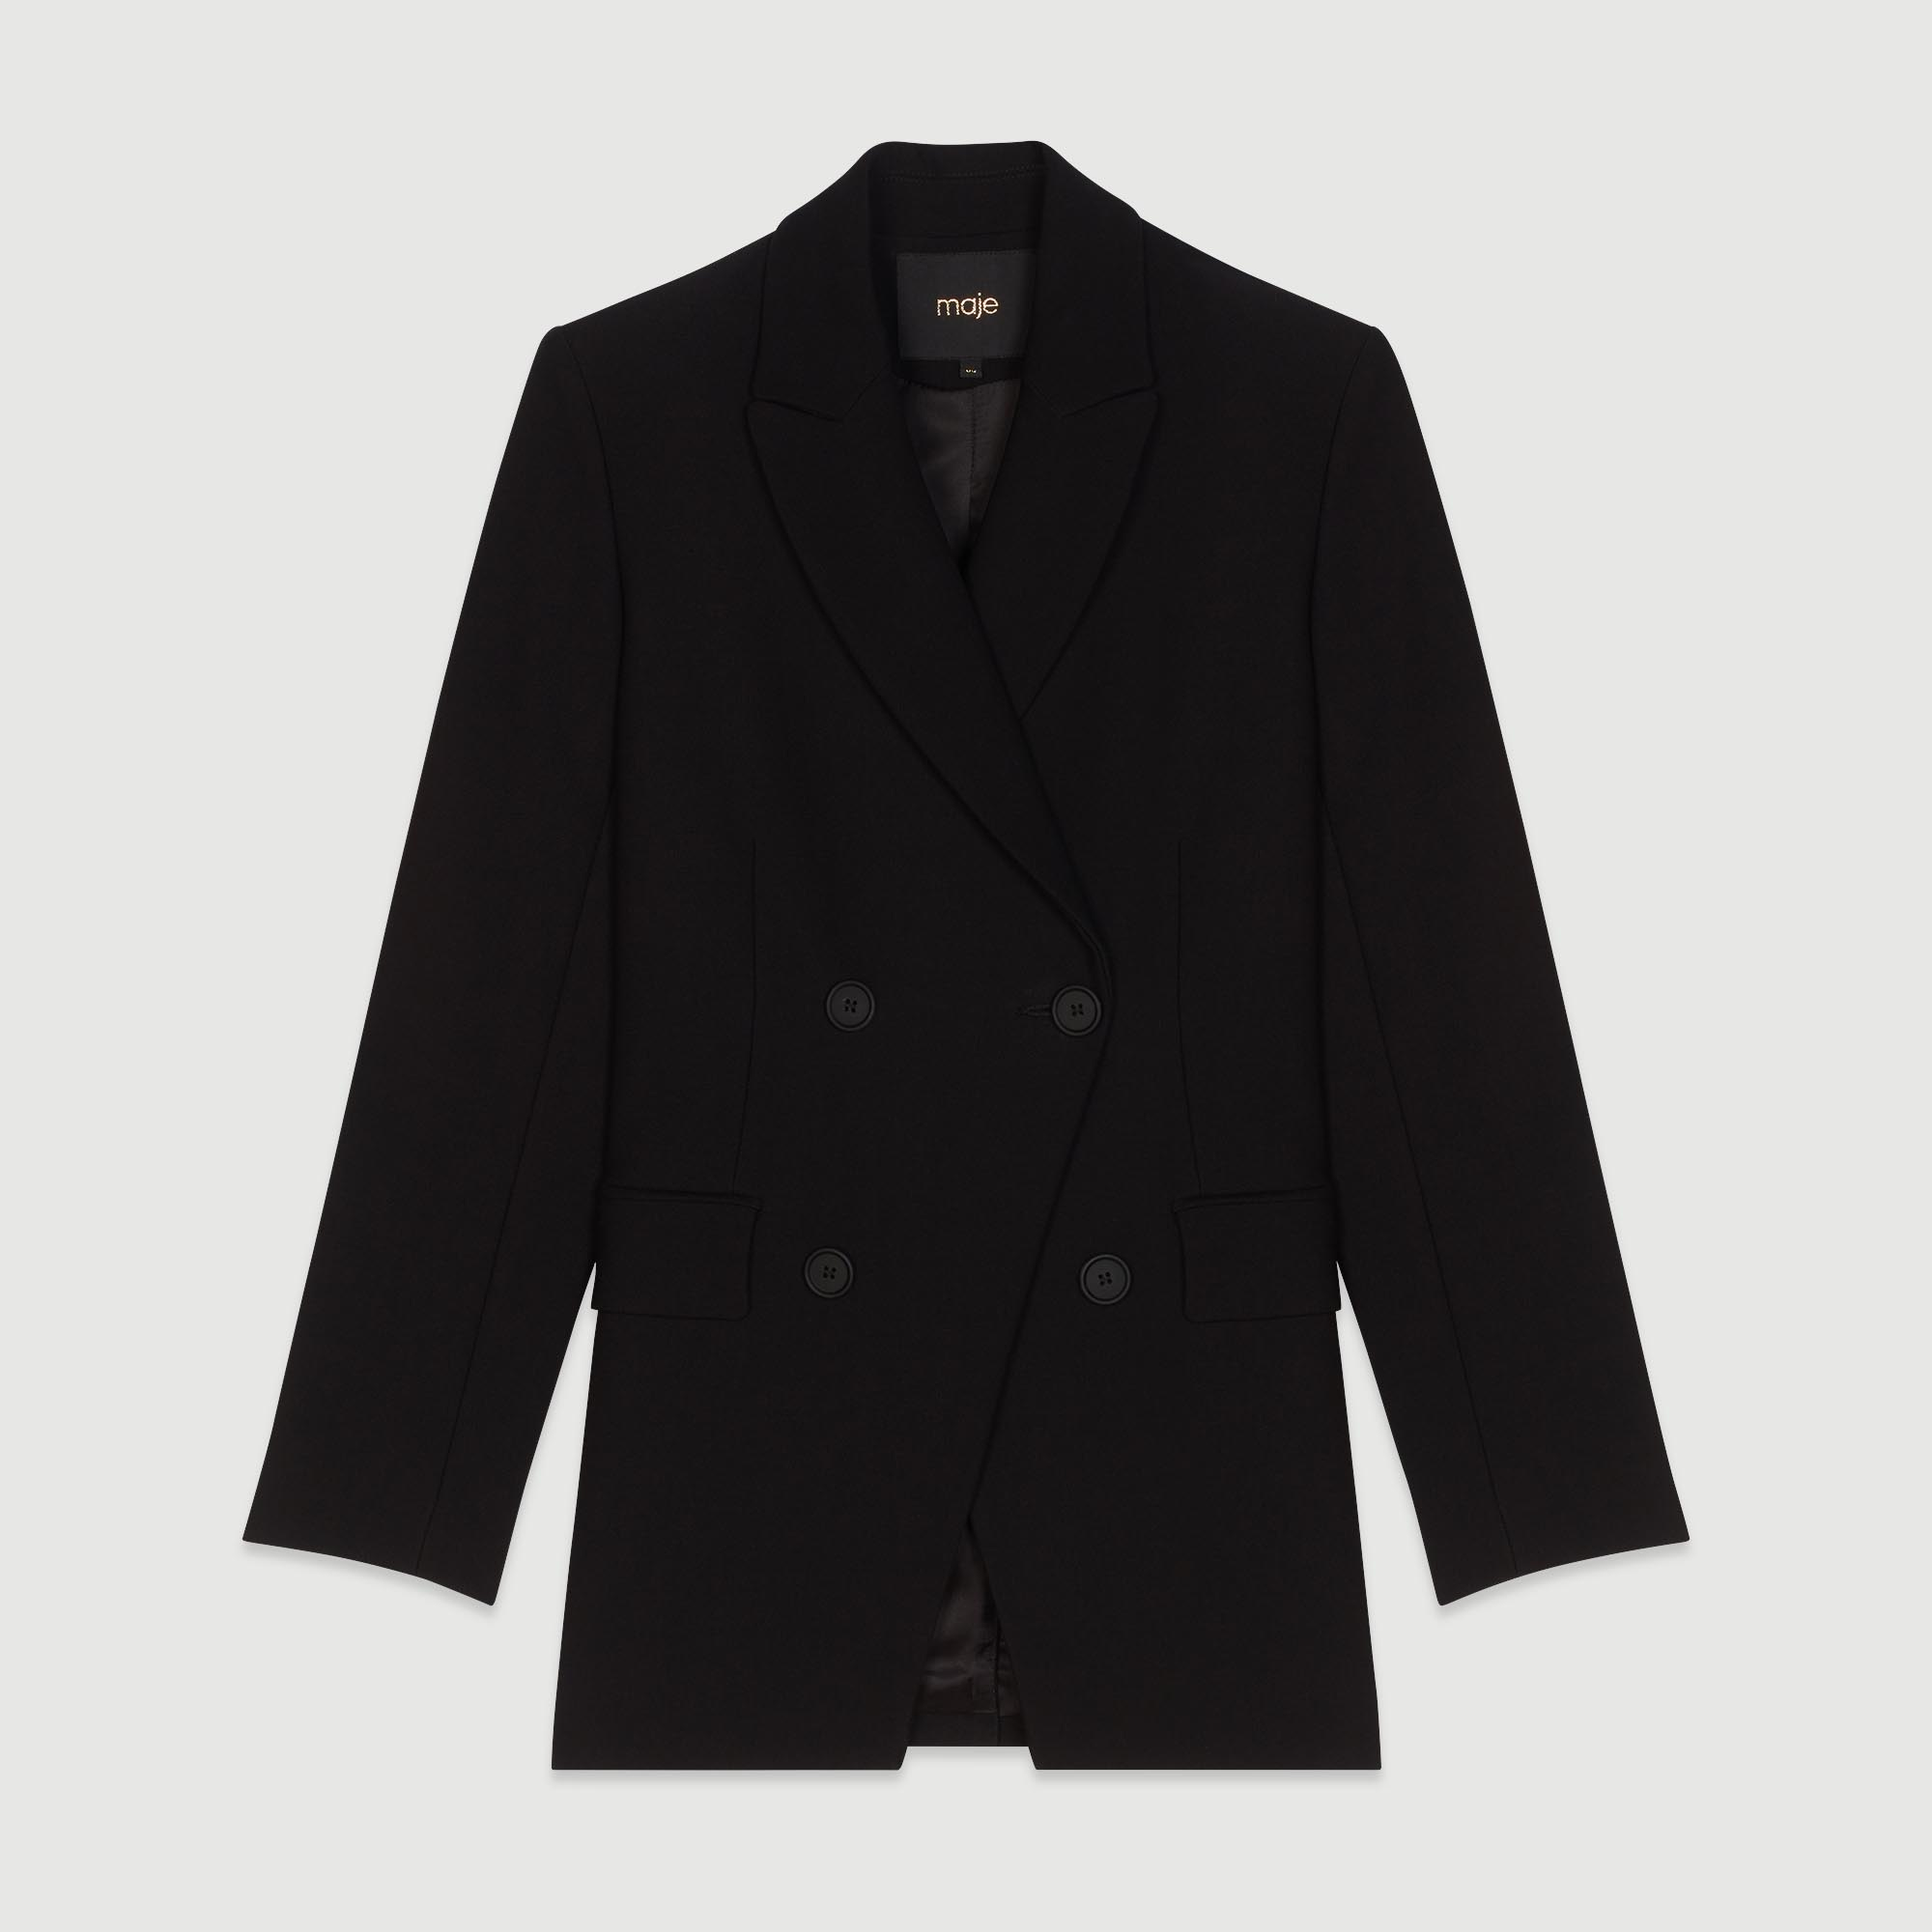 Black Suit Jacket With Buttons - Black